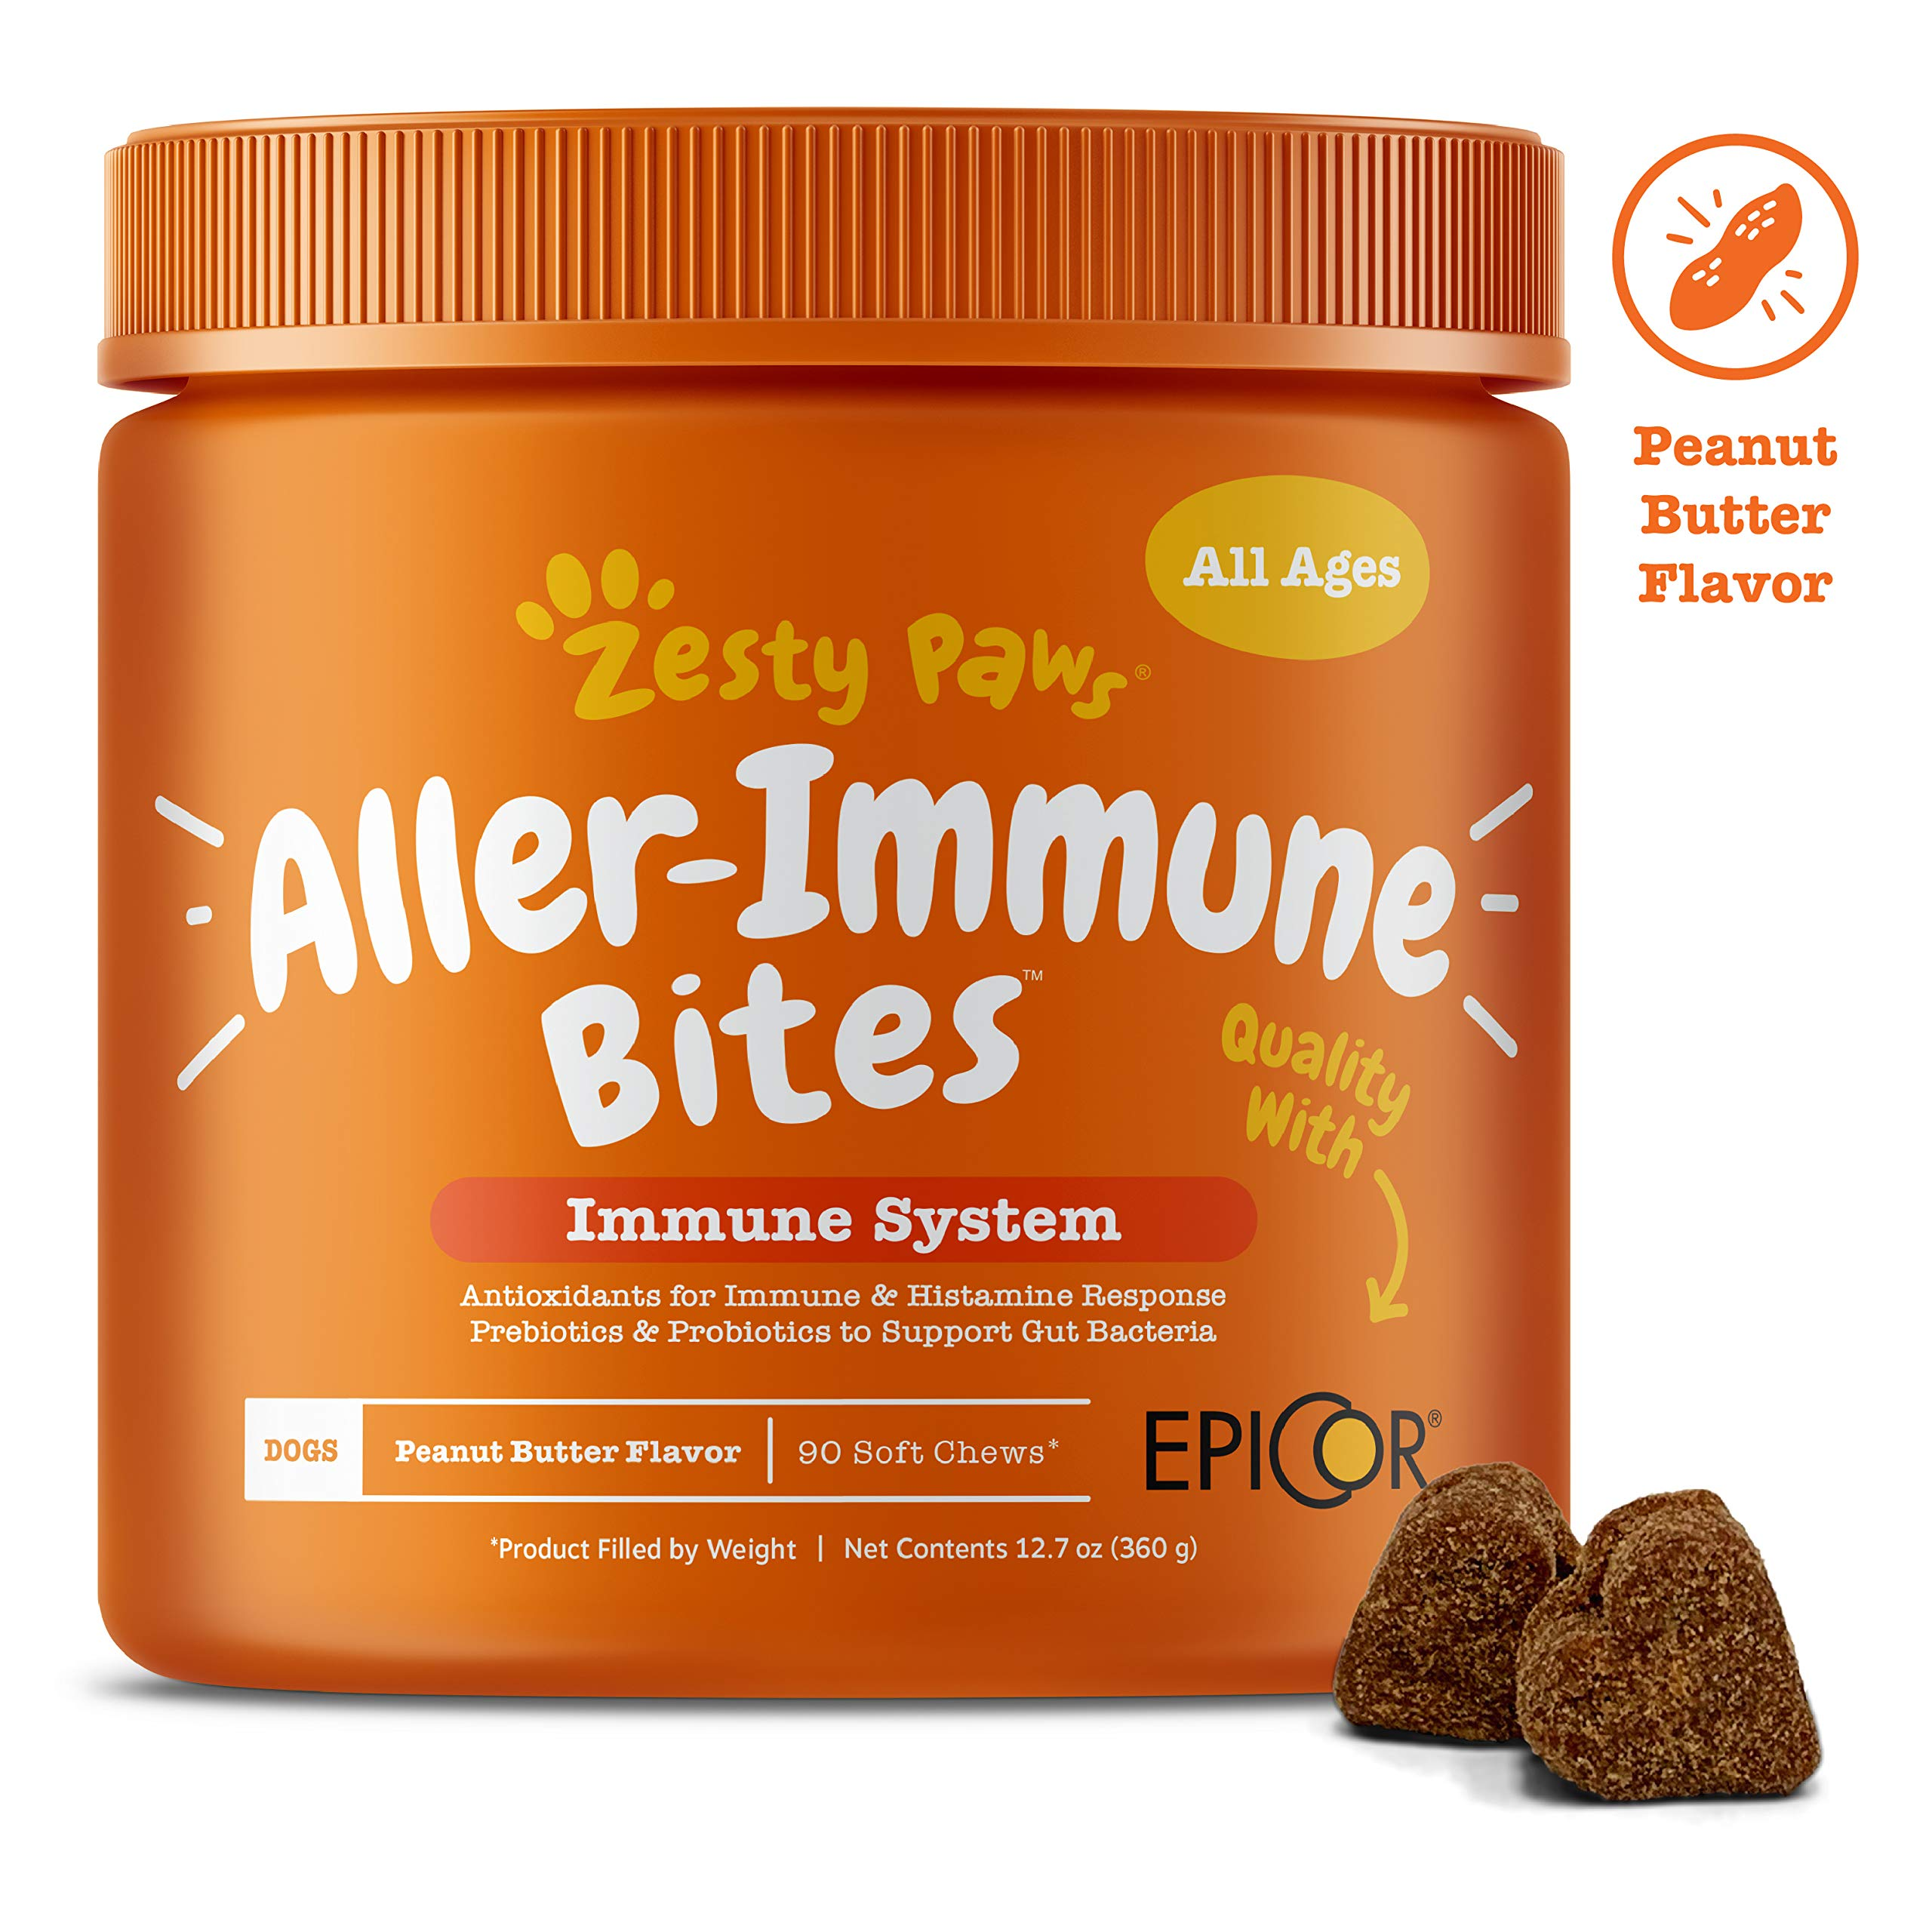 Allergy Immune Supplement for Dogs Peanut Butter - With Omega 3 Wild Alaskan Salmon Fish Oil, EpiCor, Digestive Prebiotics & Probiotics - Seasonal Allergies + Skin Itch & Hot Spots - 90 Chew Treats by Zesty Paws